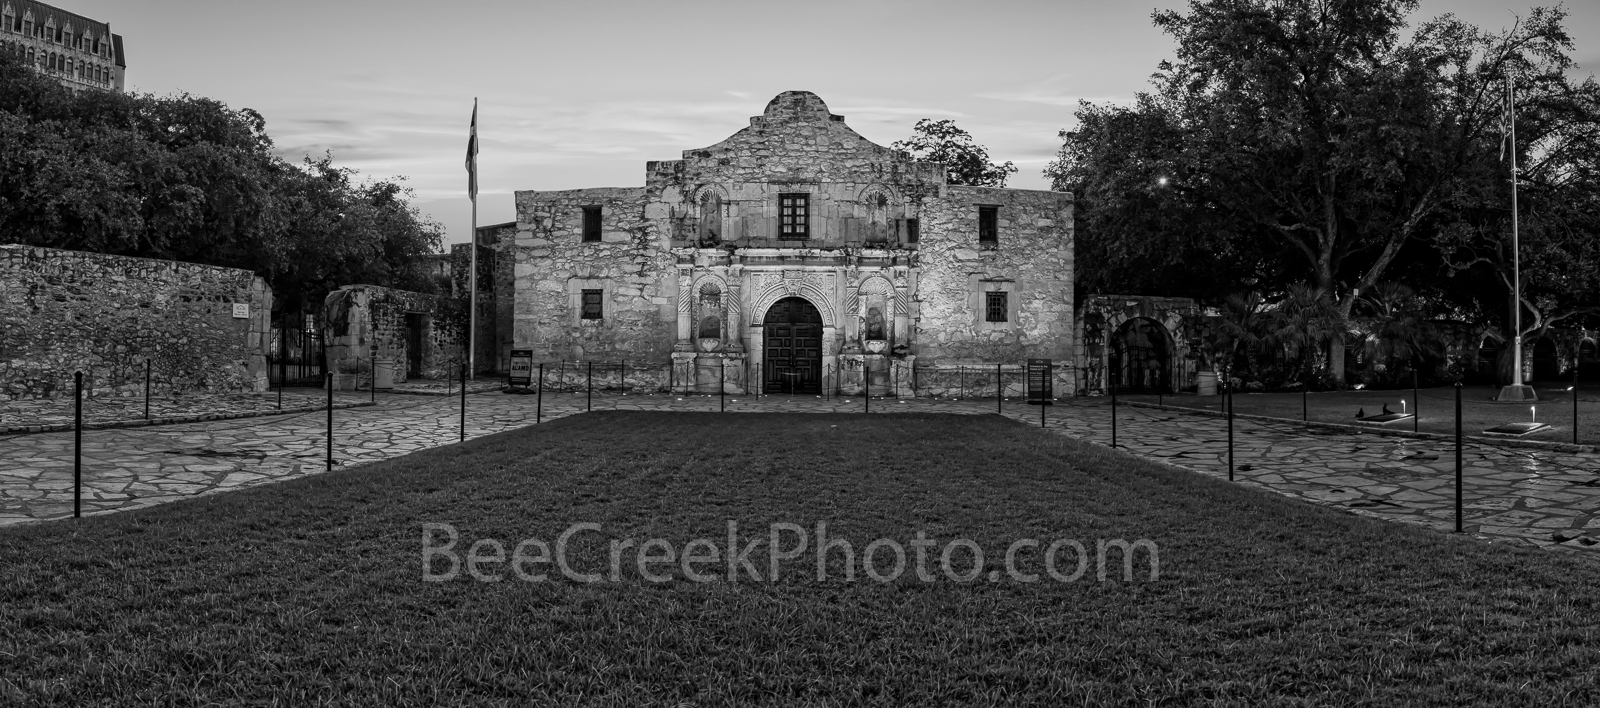 Texas Alamo, San Antonio, Alamo, historic, history, landmark, pano, panorama, downtown, city, mission, sunrise, Santa Anna, mexico, tourist, travel, historic landmark, American, Texas, Texan, America,, photo